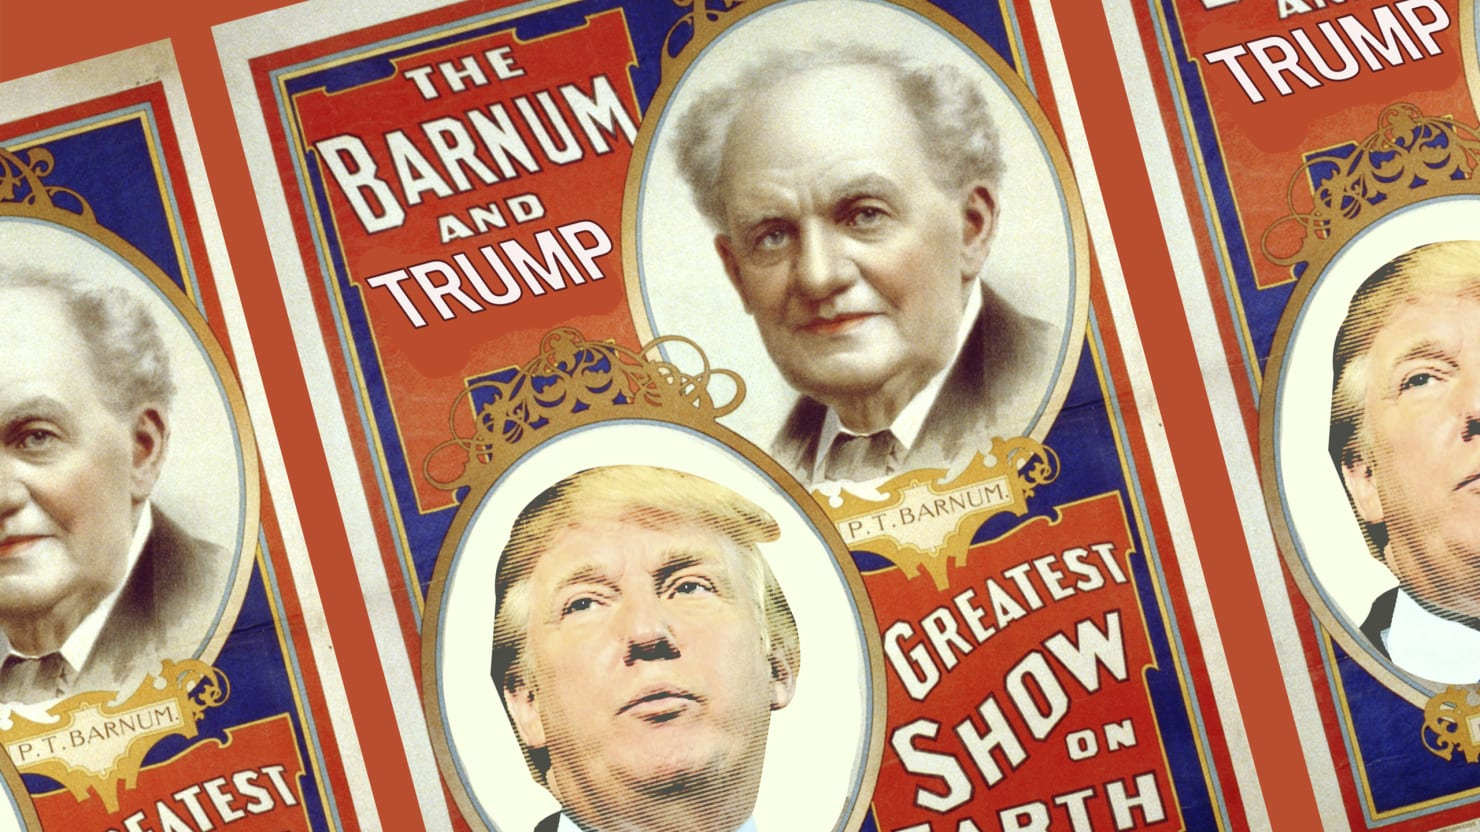 Pt barnum makes trump look like a clown donald trump has compared himself to the legendary american showman but he has more in common with items found in barnums museum than his incredible stopboris Choice Image